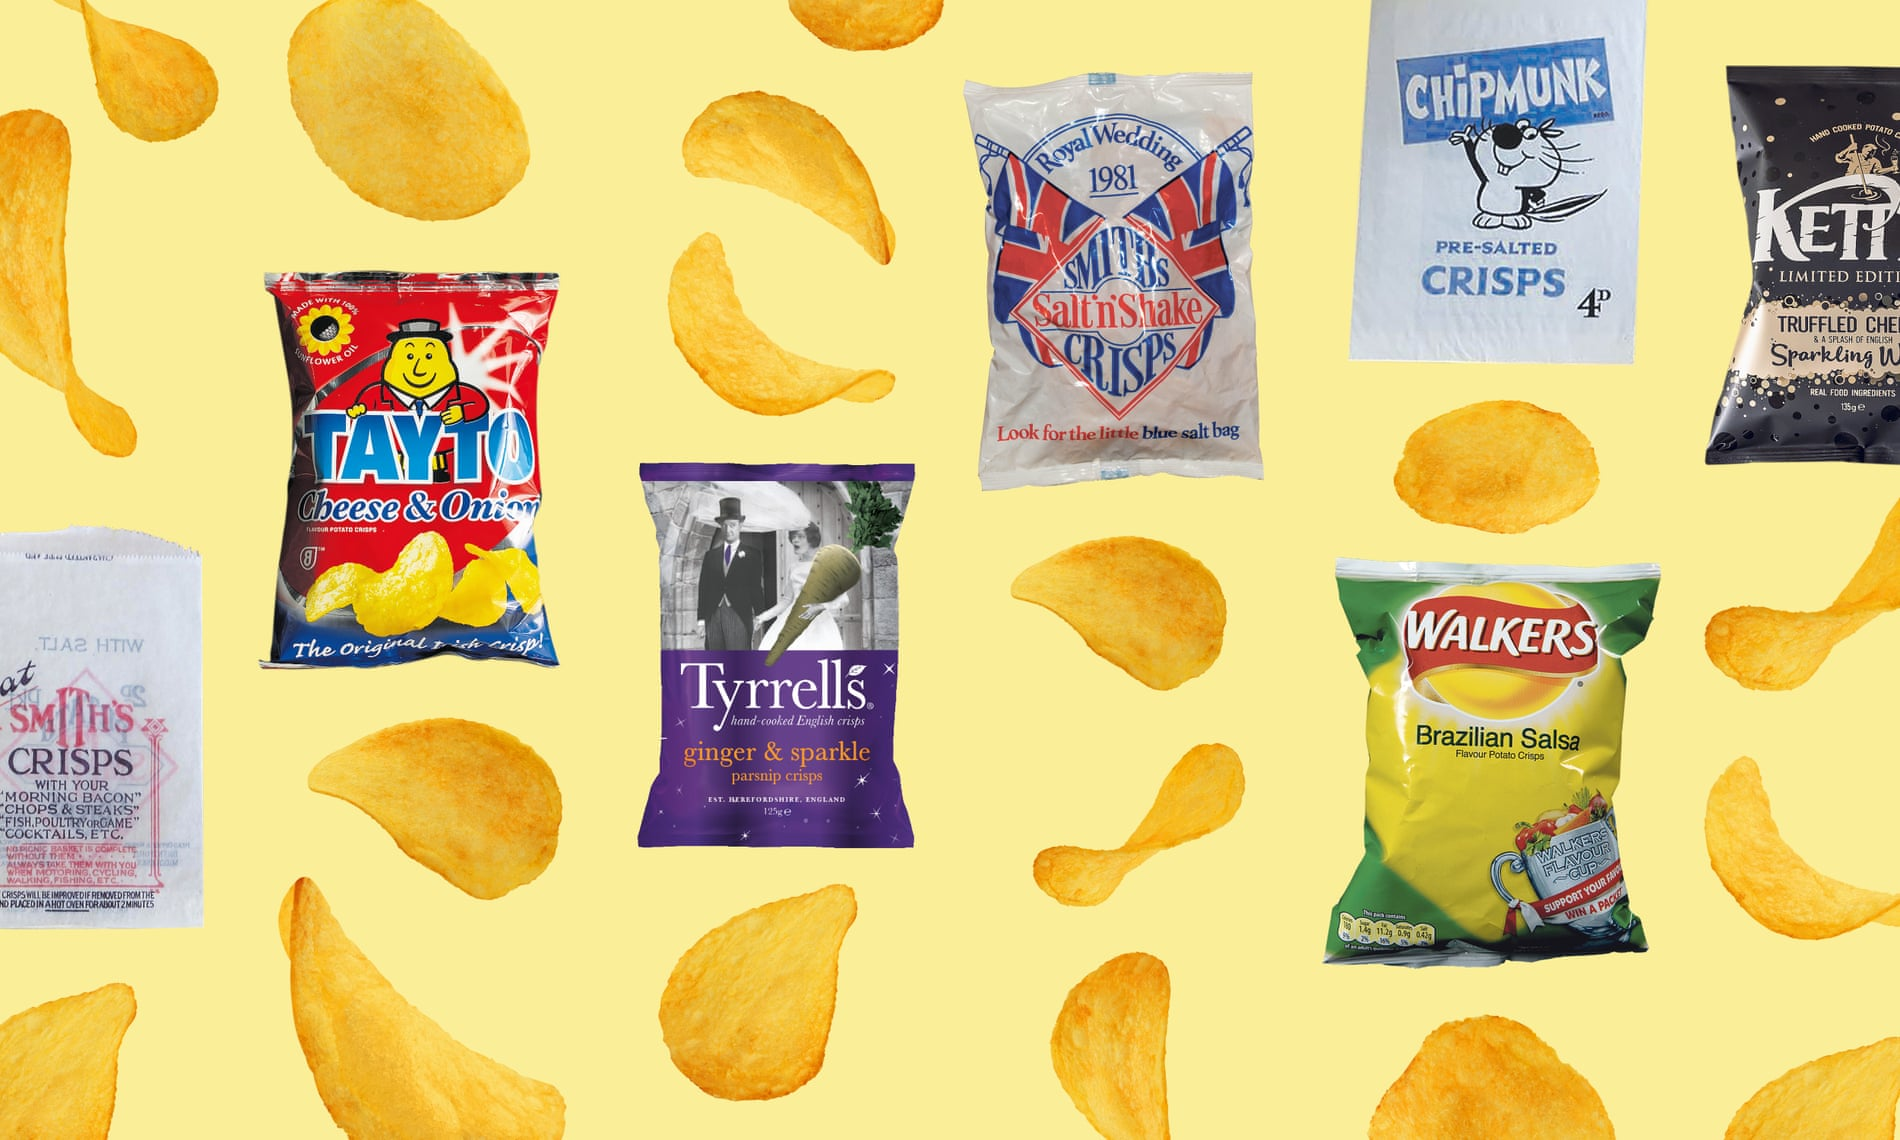 So long, salt and vinegar: how crisp flavours went from simple to sensational | The Guardian